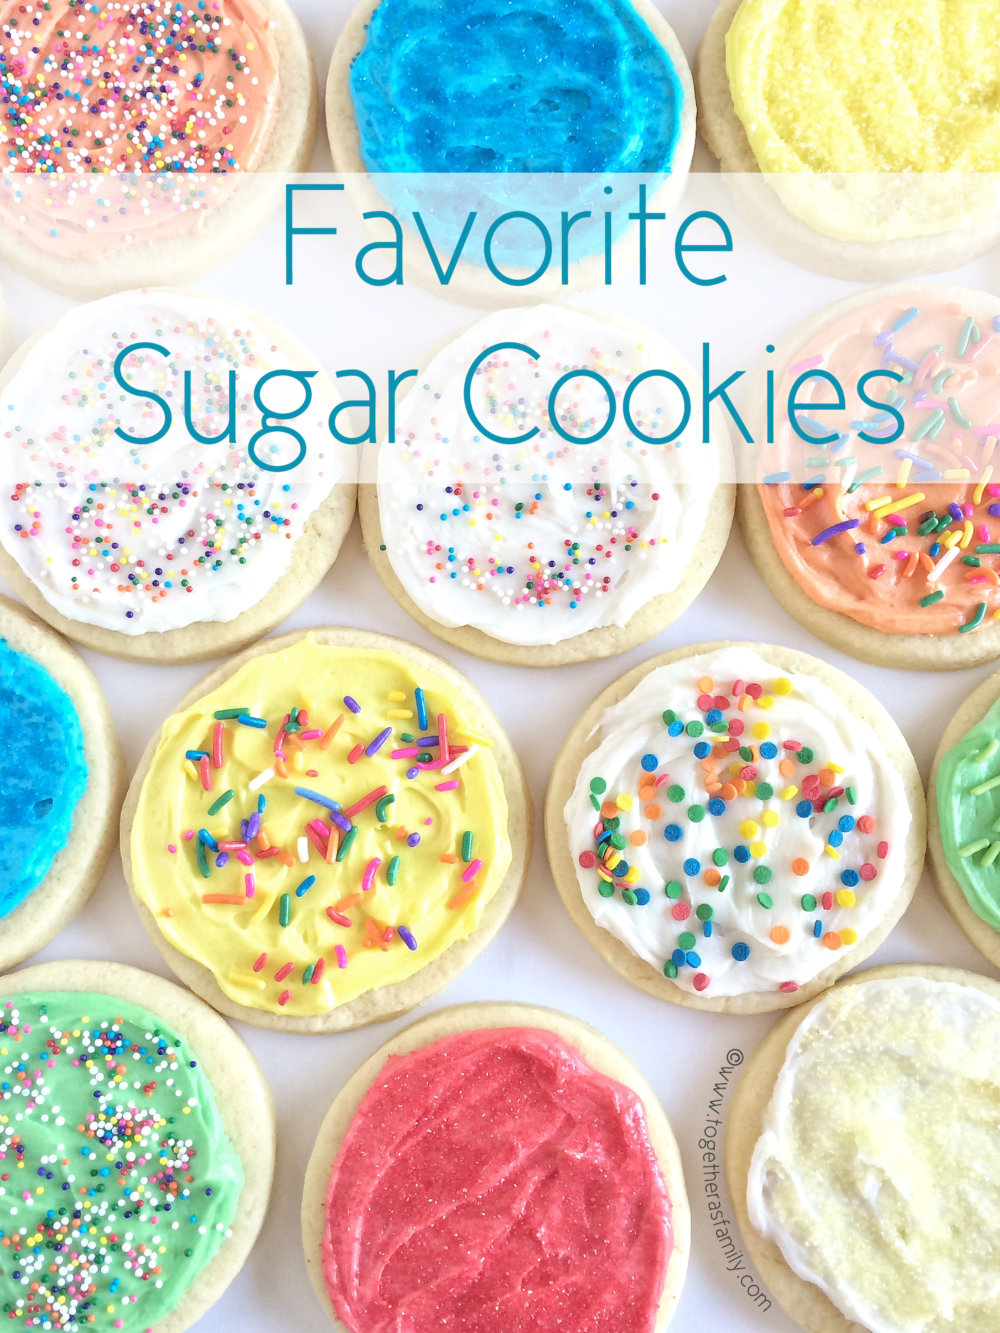 Favorite Sugar Cookies